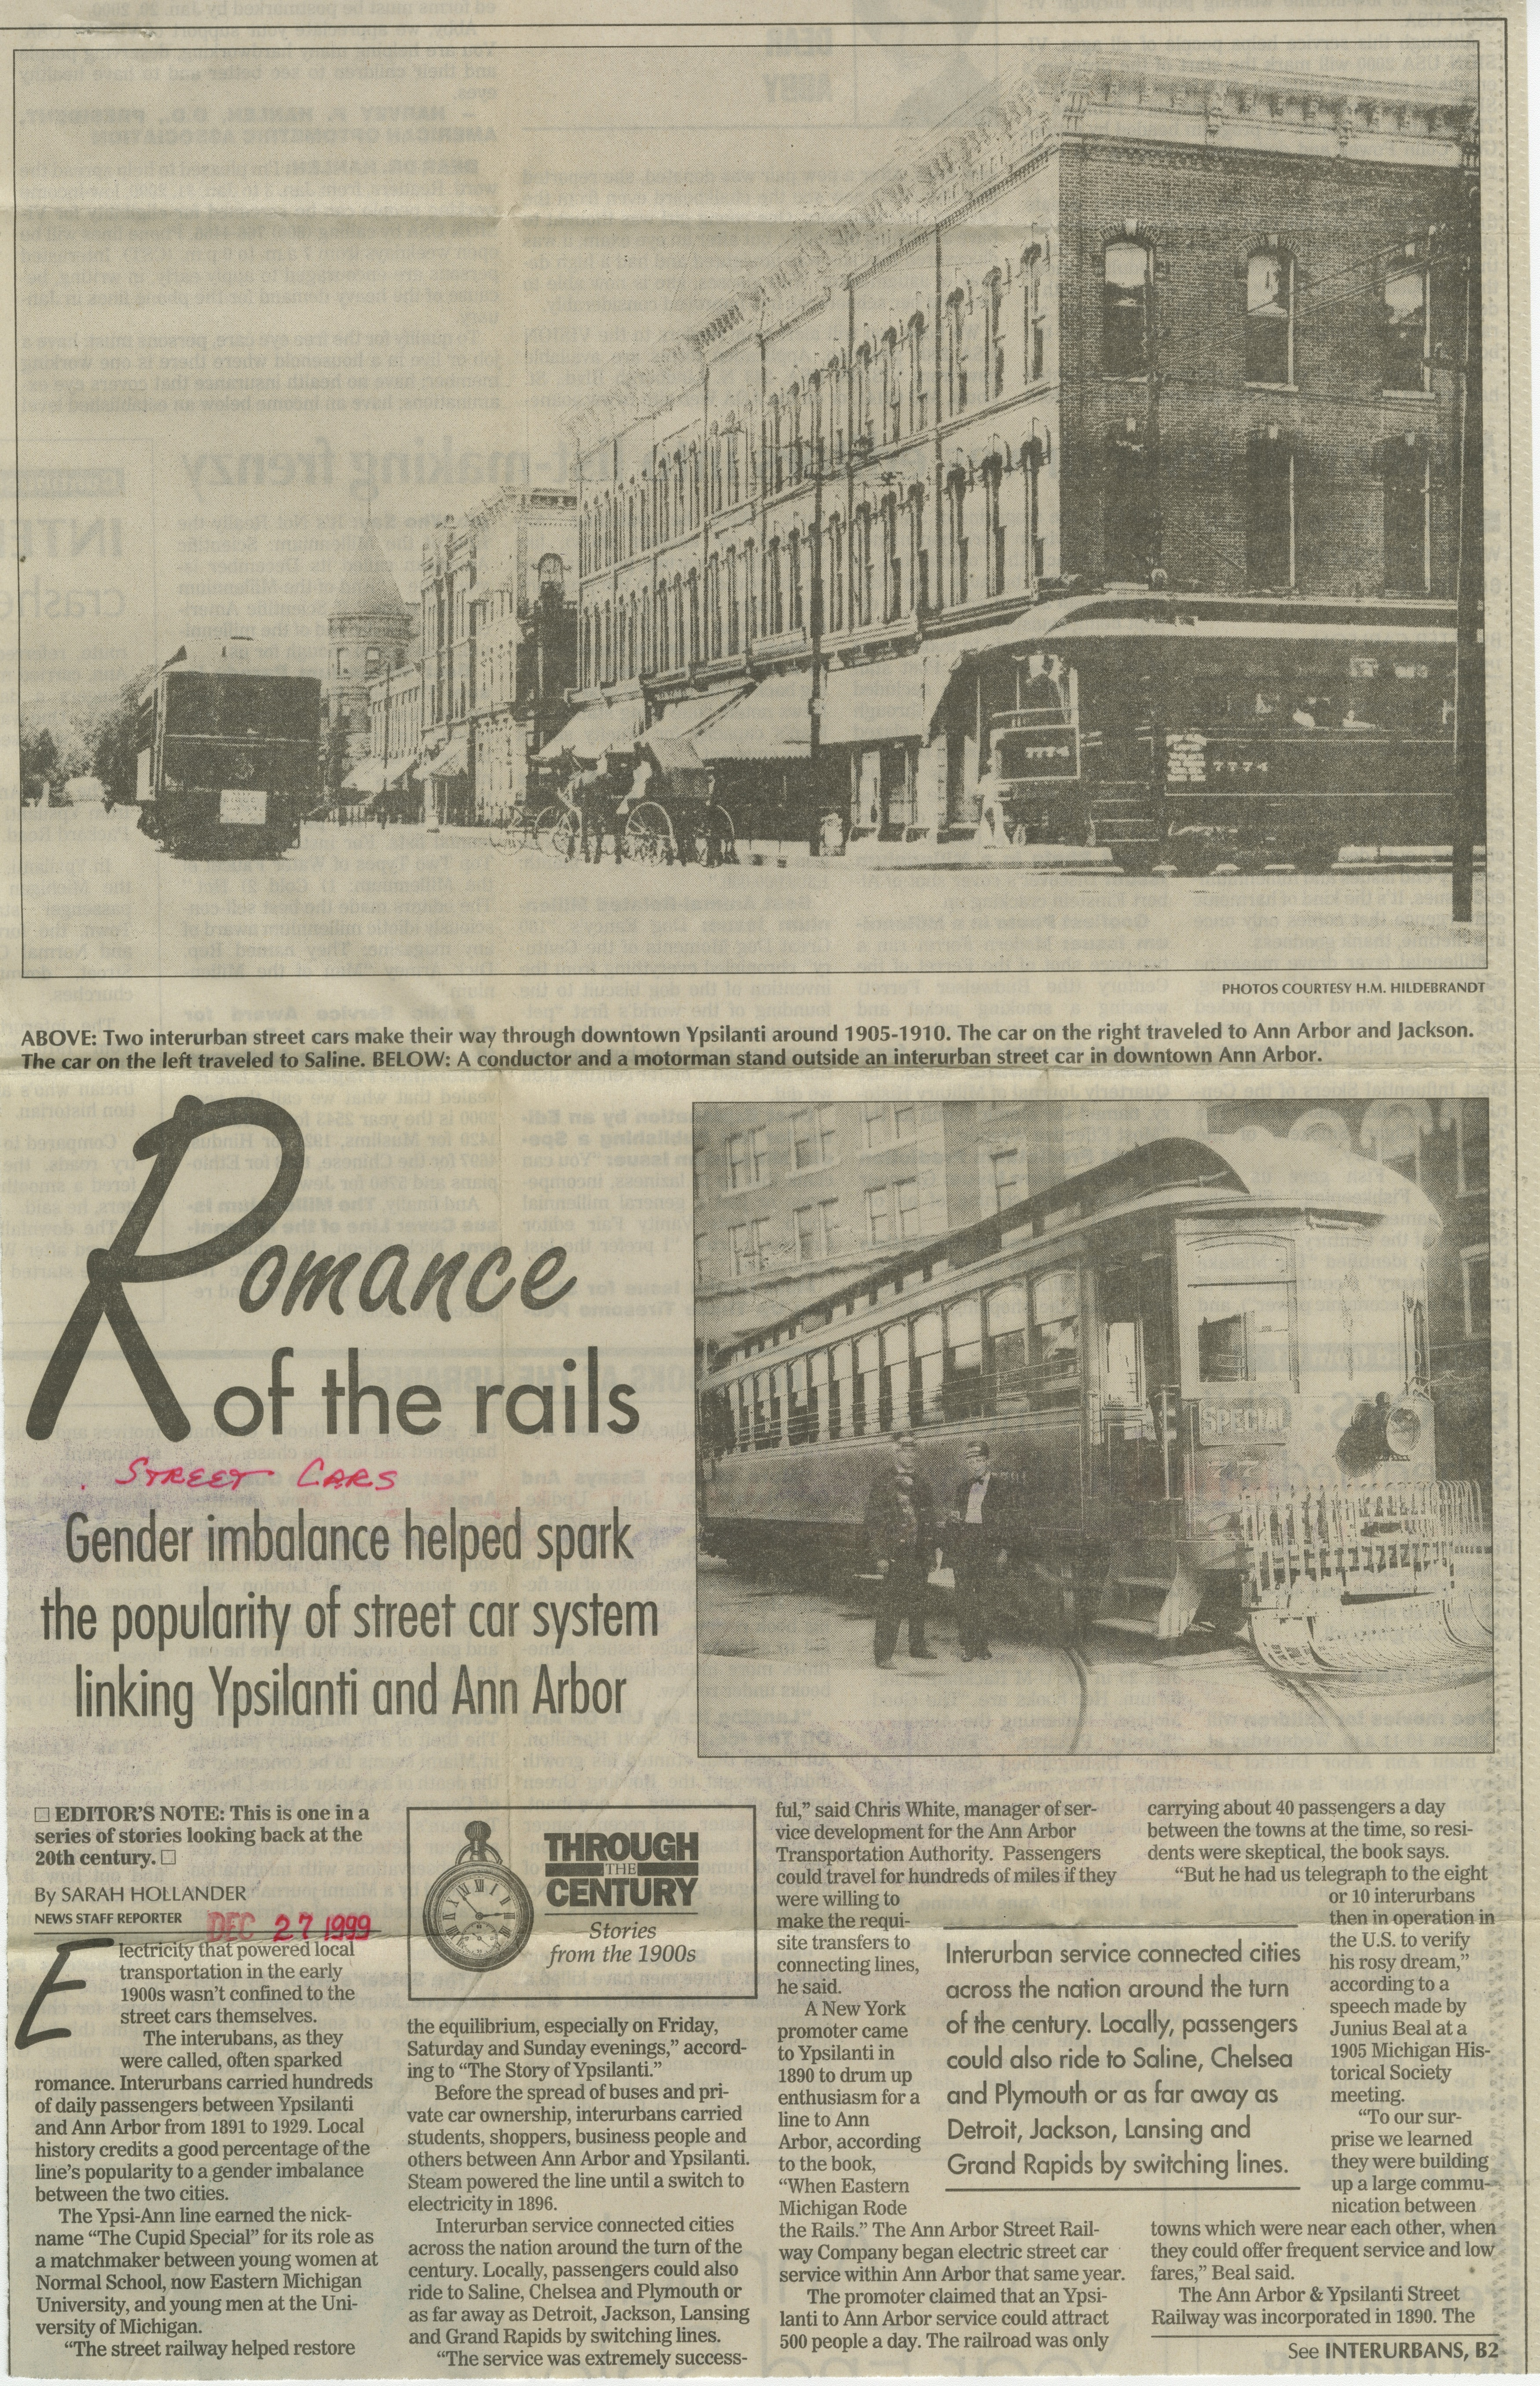 Romance of the rails: gender imbalance helped spark the popularity of street car system linking Ypsilanti and Ann Arbor image